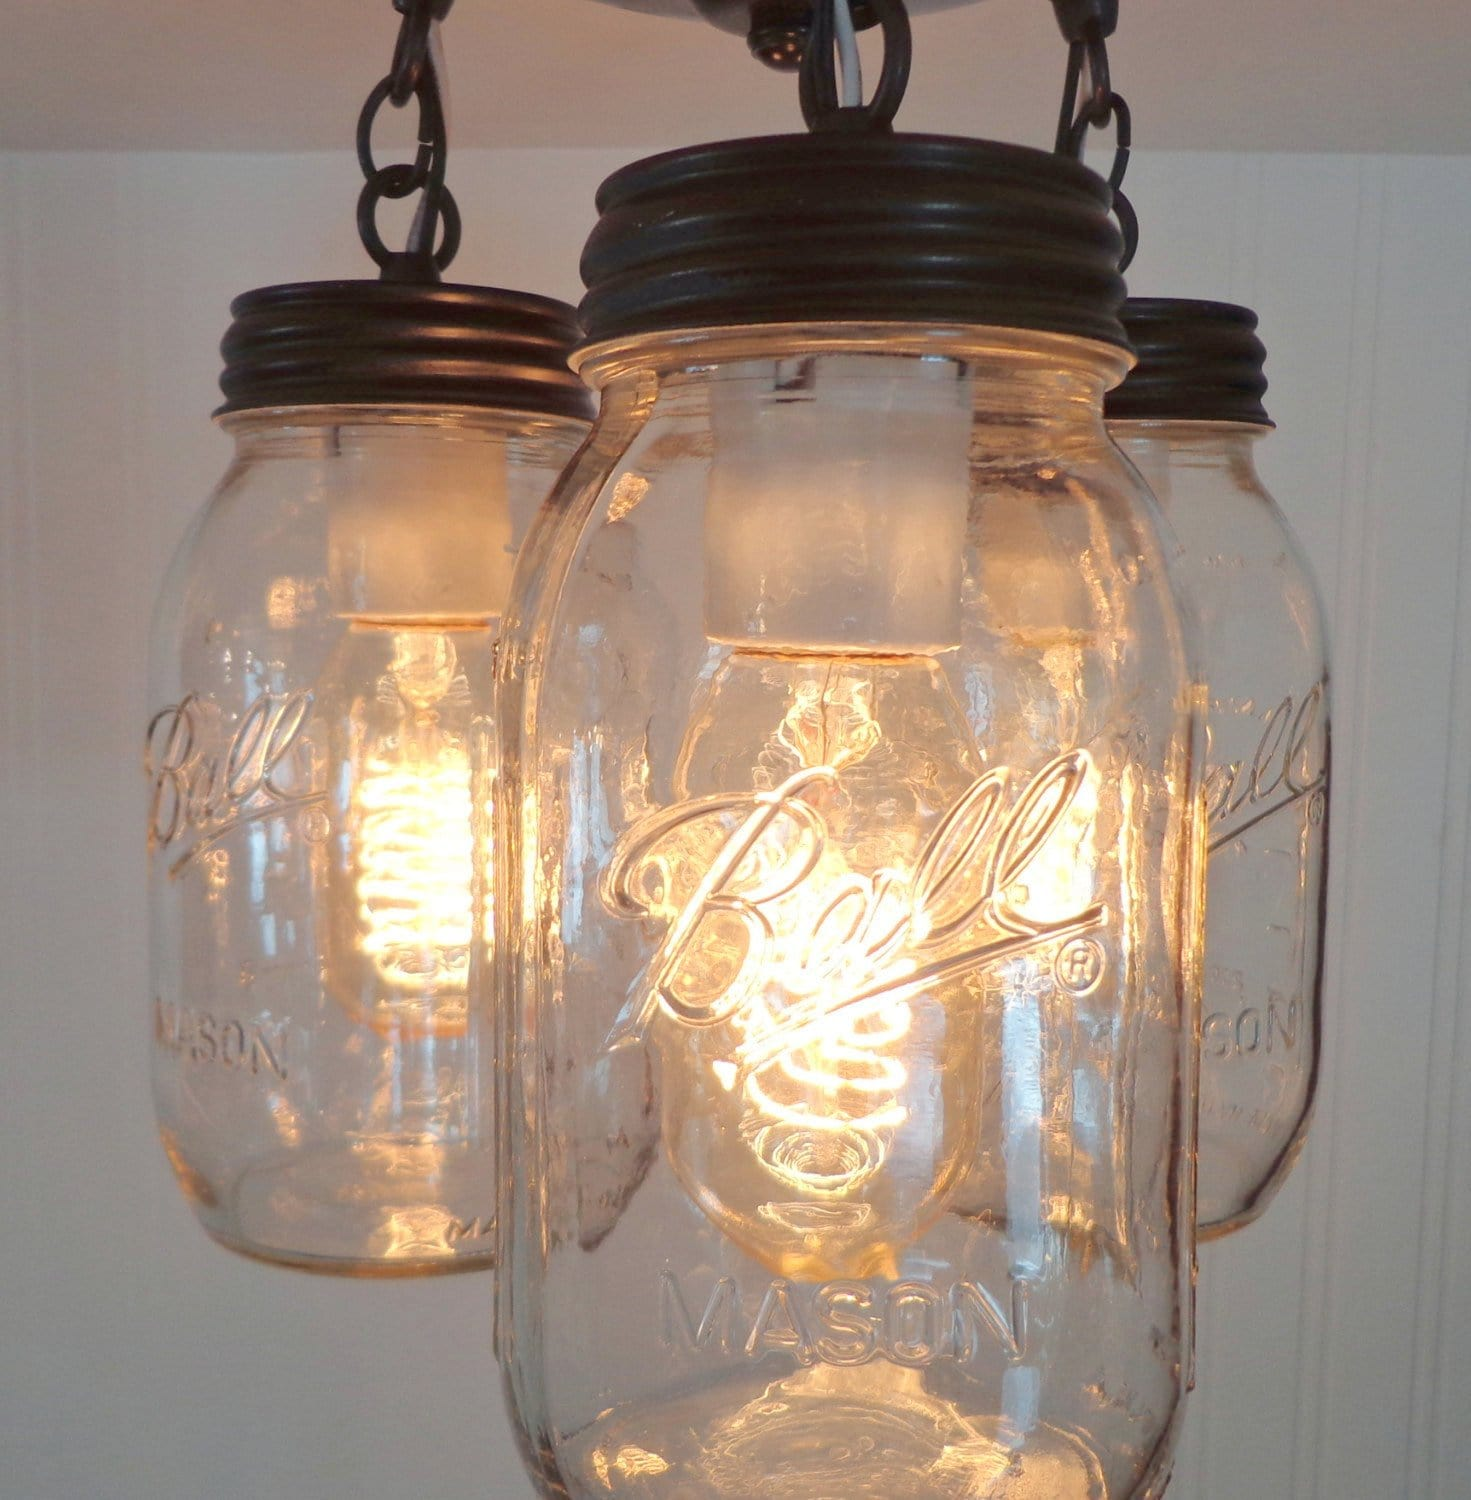 Mason Jar Lighting Fixtures Drop Ceiling Load Image Into Gallery Viewer Edison Style Light Bulb For Mason Jar Lighting 40 The Lamp Goods Edison Style Light Bulb For Mason Jar Lighting 40 Watts The Lamp